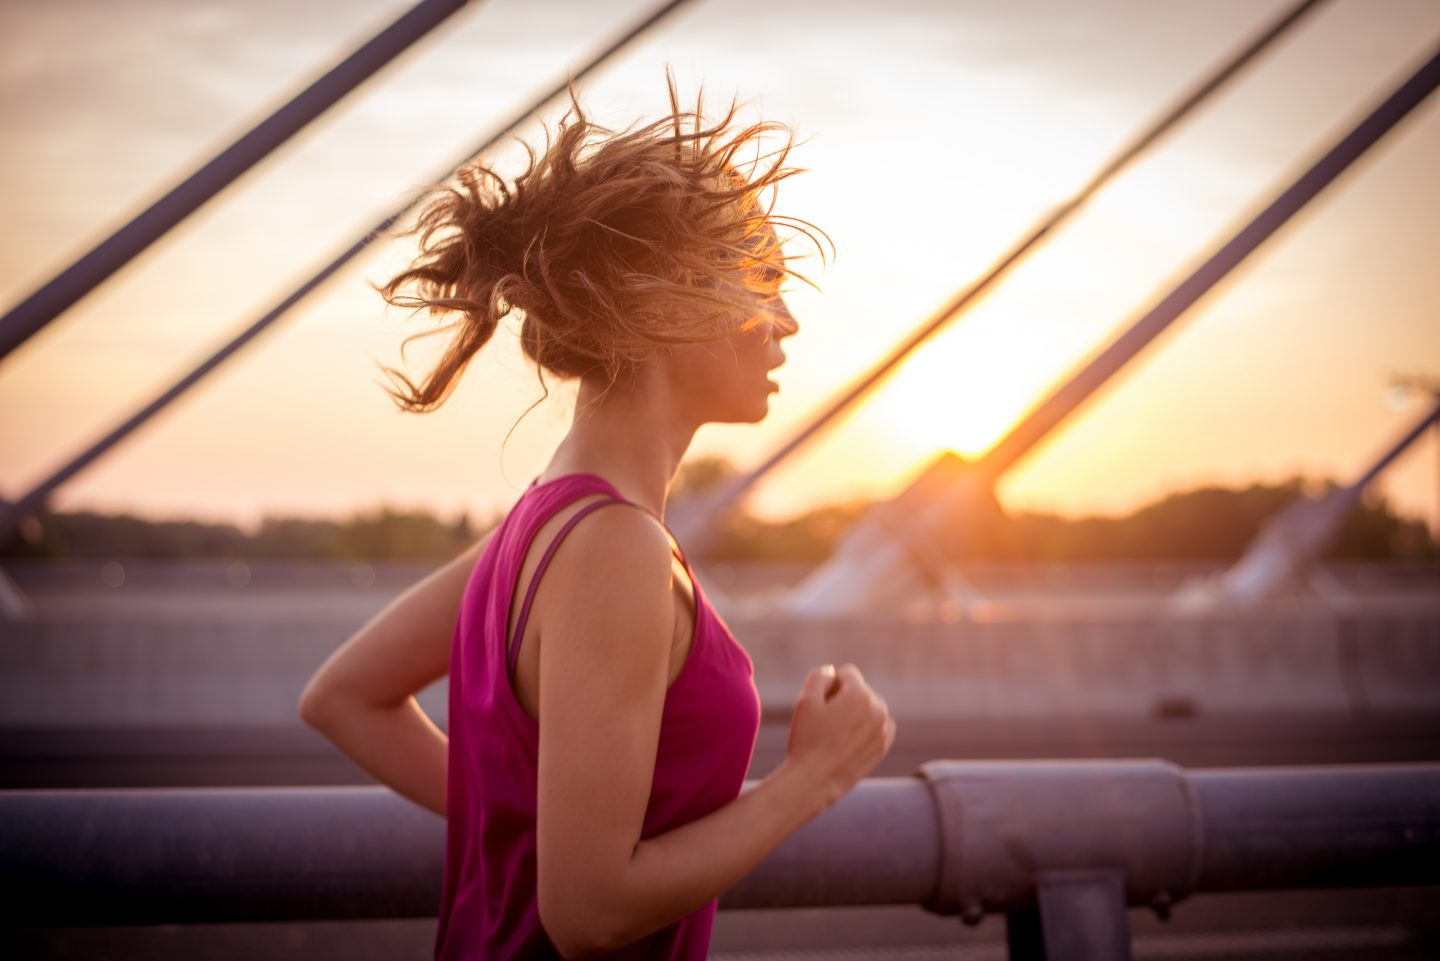 Young sportswoman jogging over the bridge in the morning while her long brown hair is waving in the wind. Rising sun is in the background.